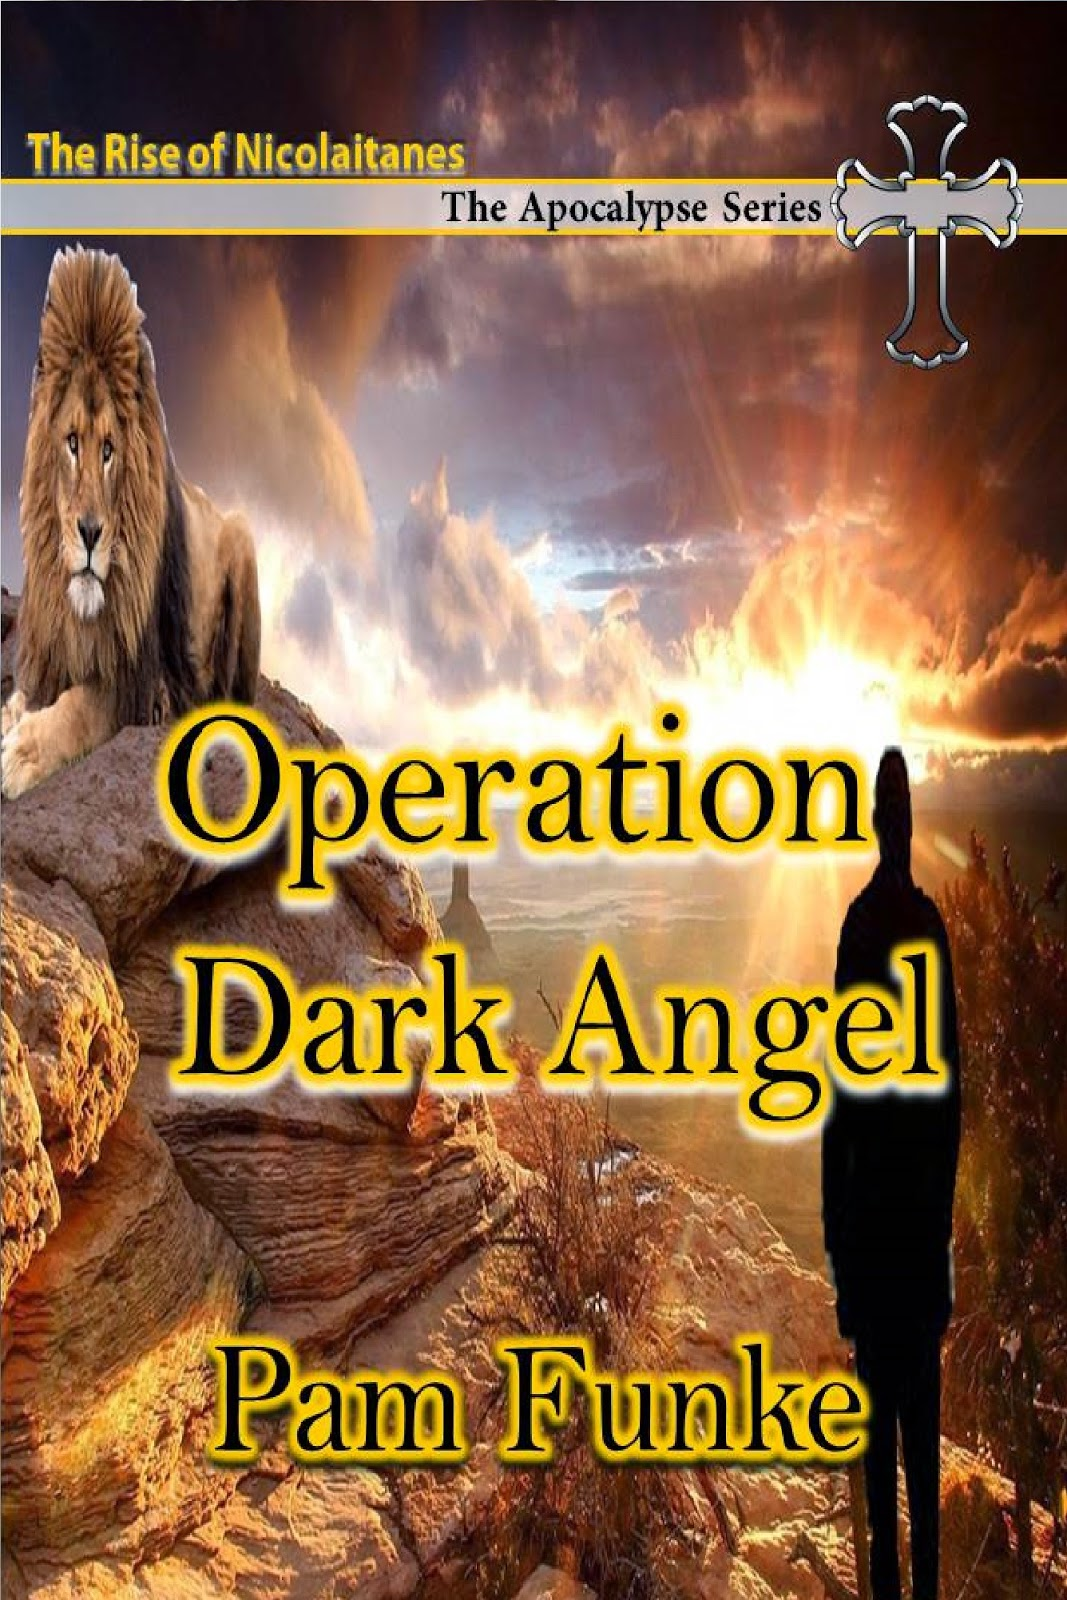 http://operationdarkangel.blogspot.com/